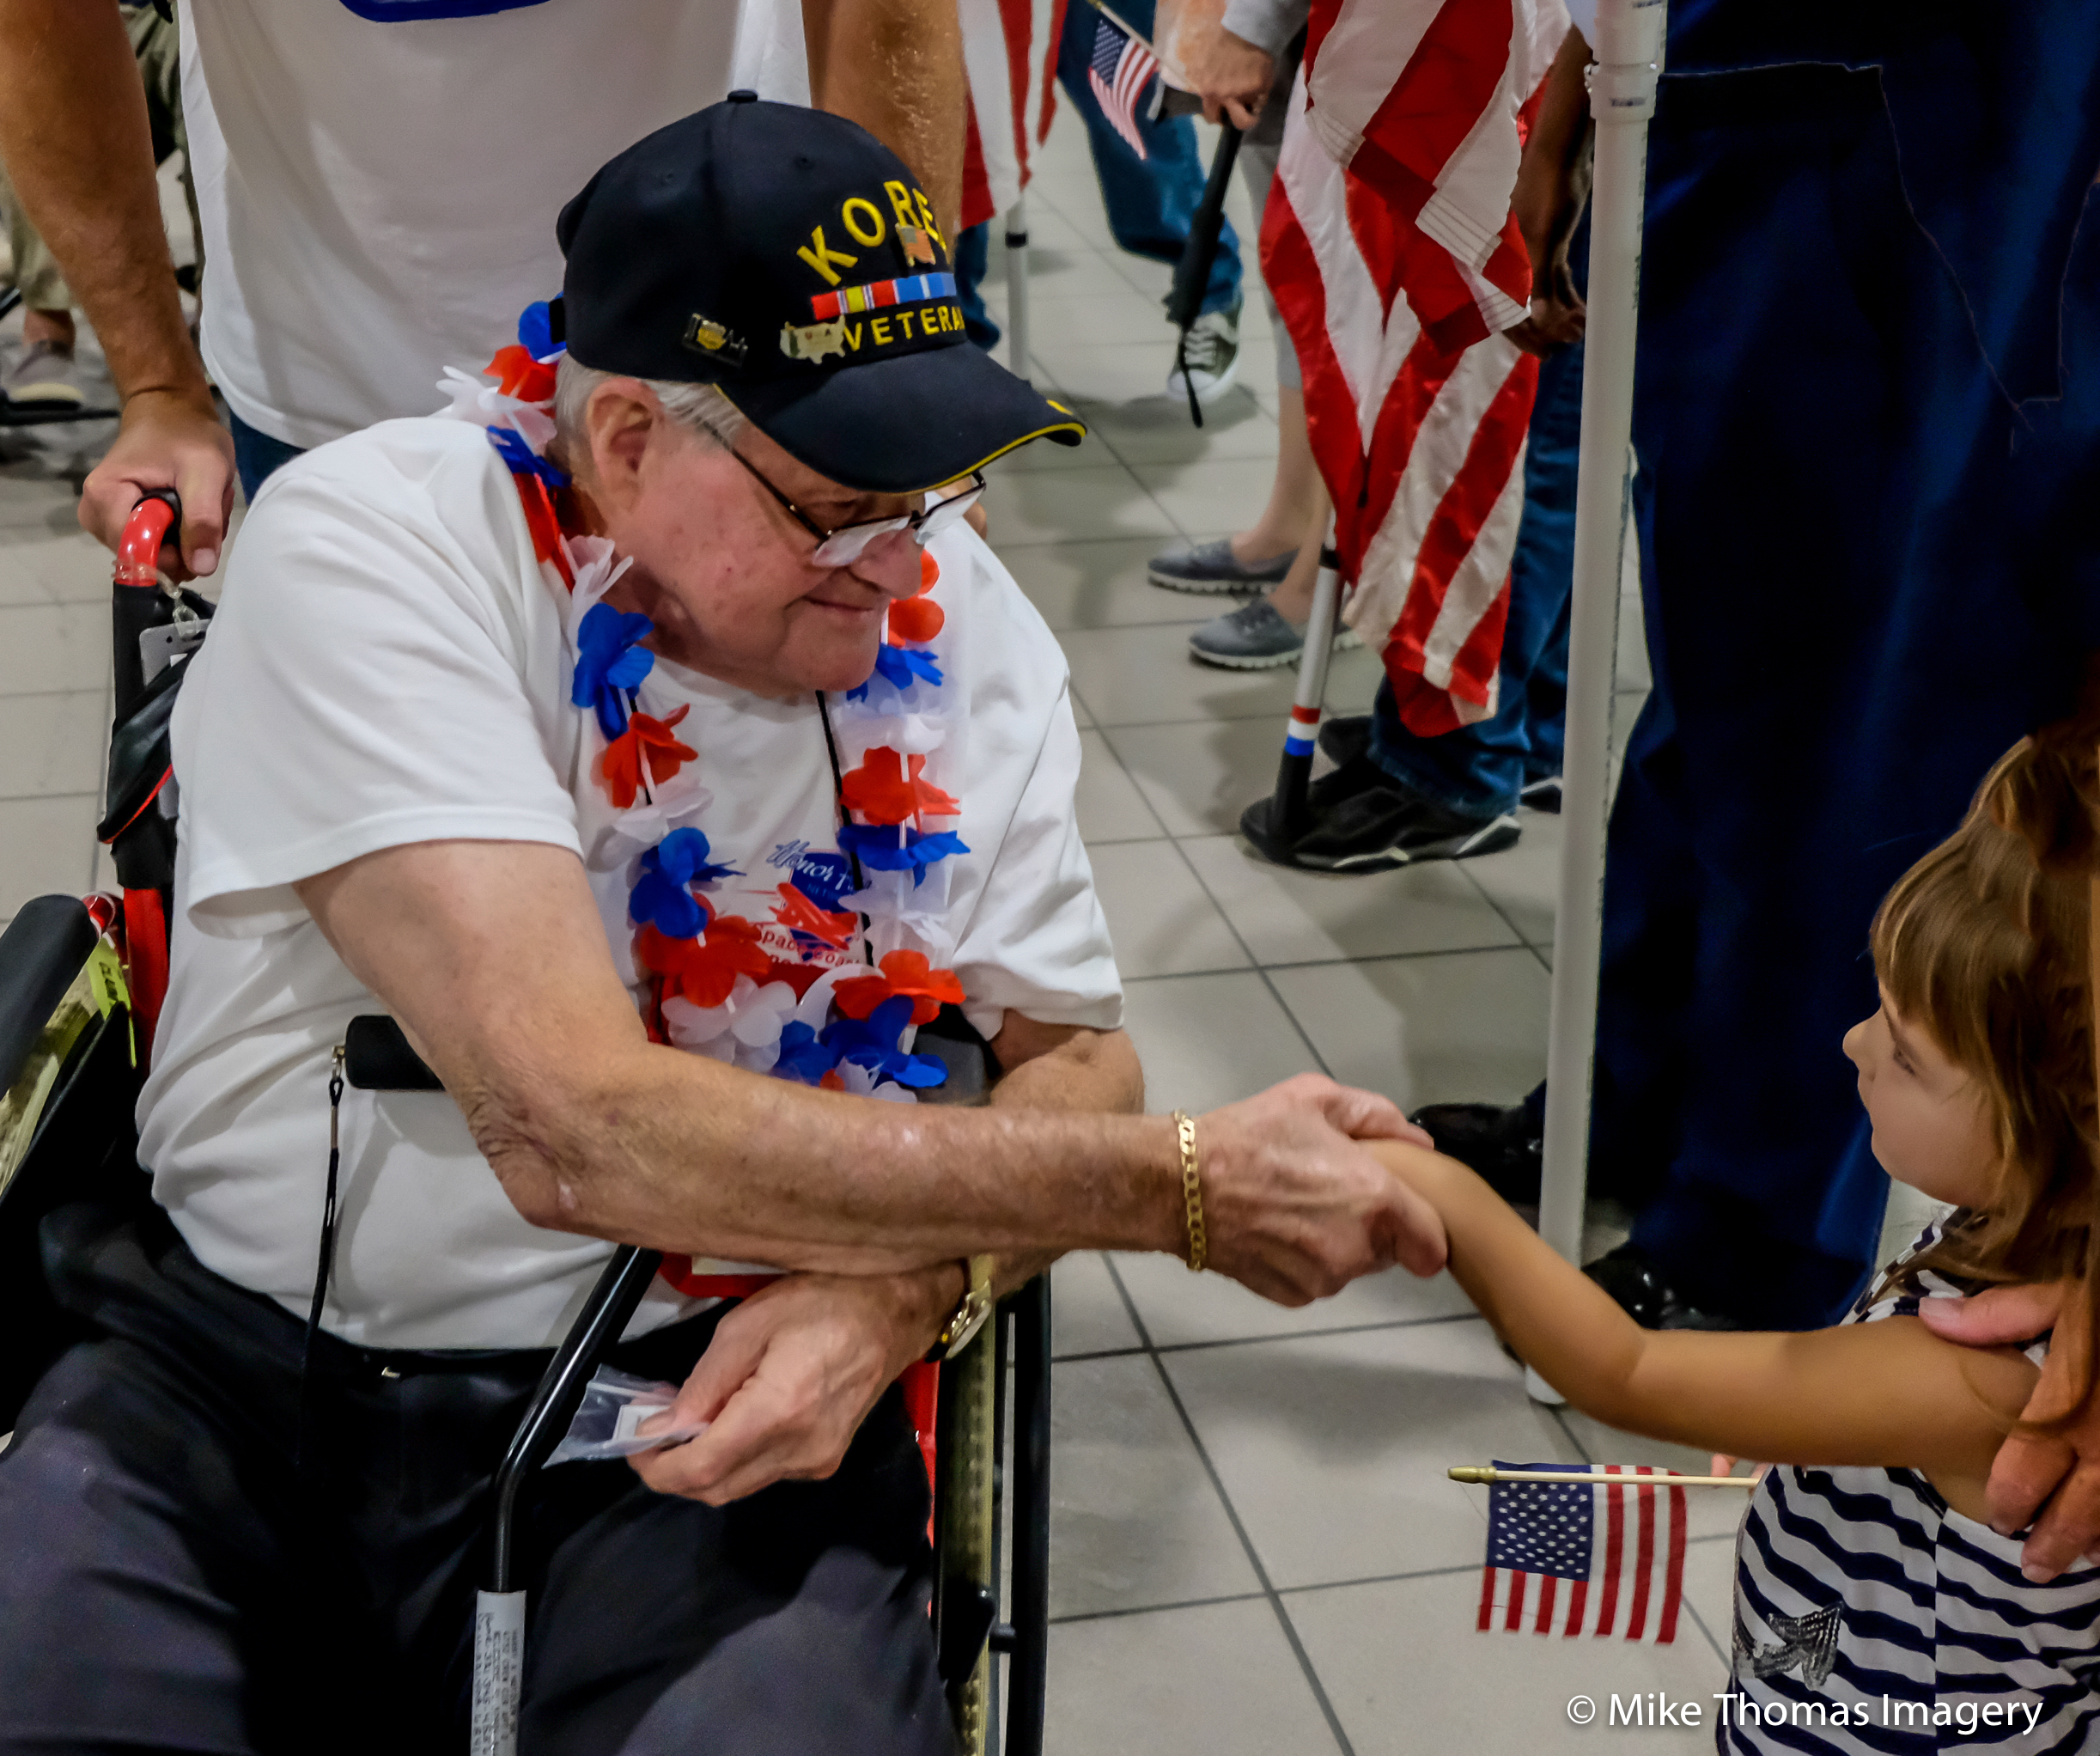 honor flight, military, veterans, ww ii, world war ii, korean war, vietnam